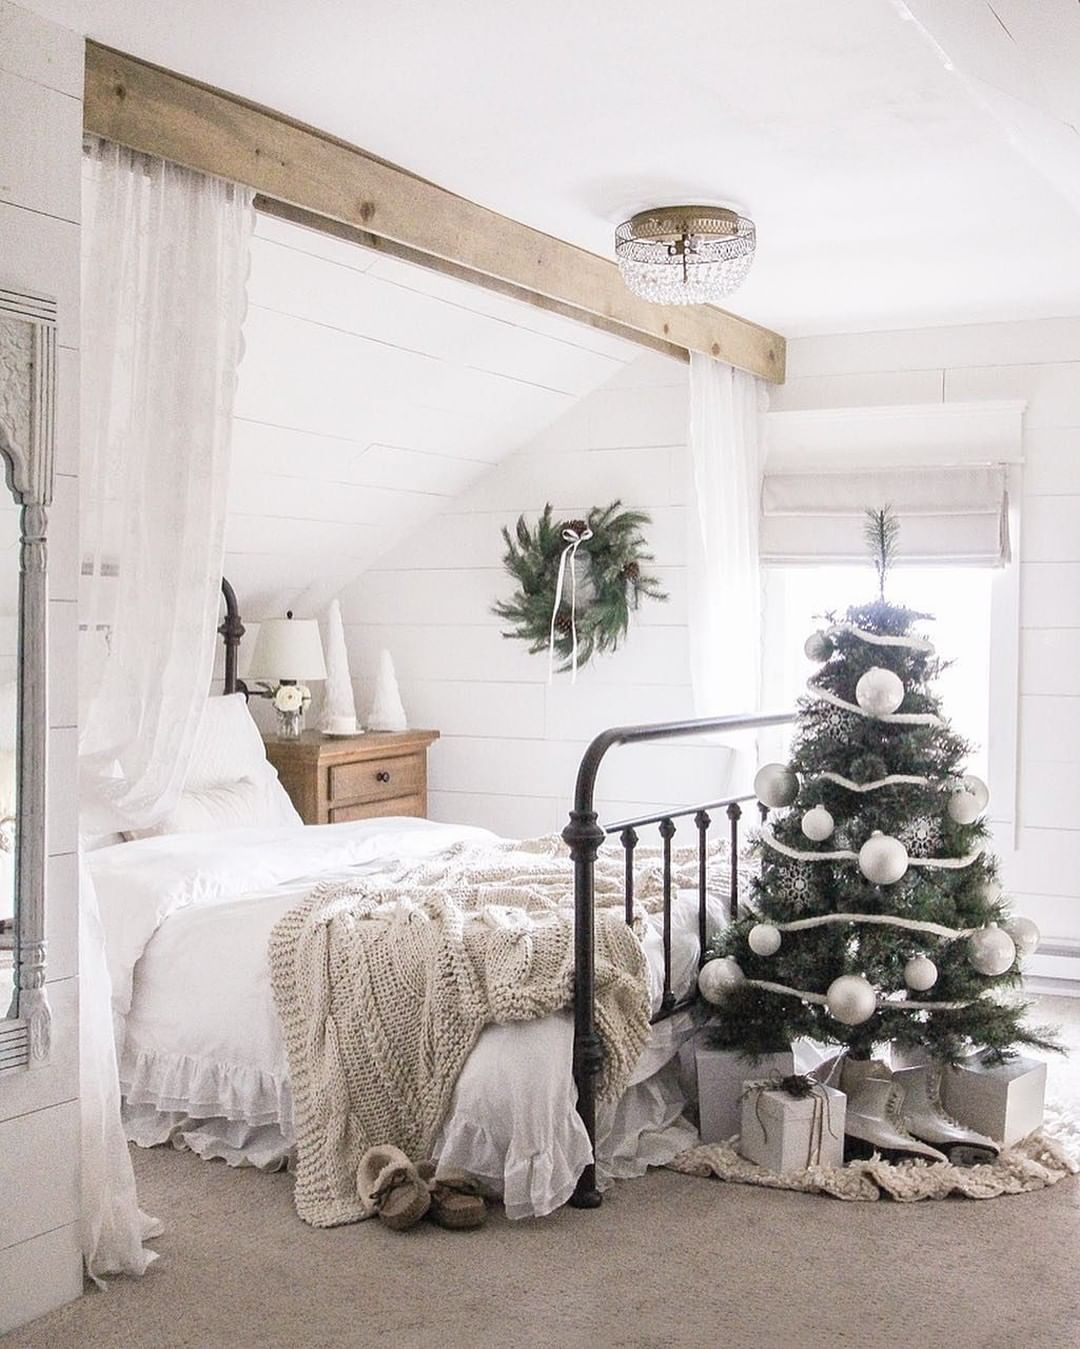 Journal Decoration Maison The Cottage Journal On Instagram Be Right Back We Need To Go Get